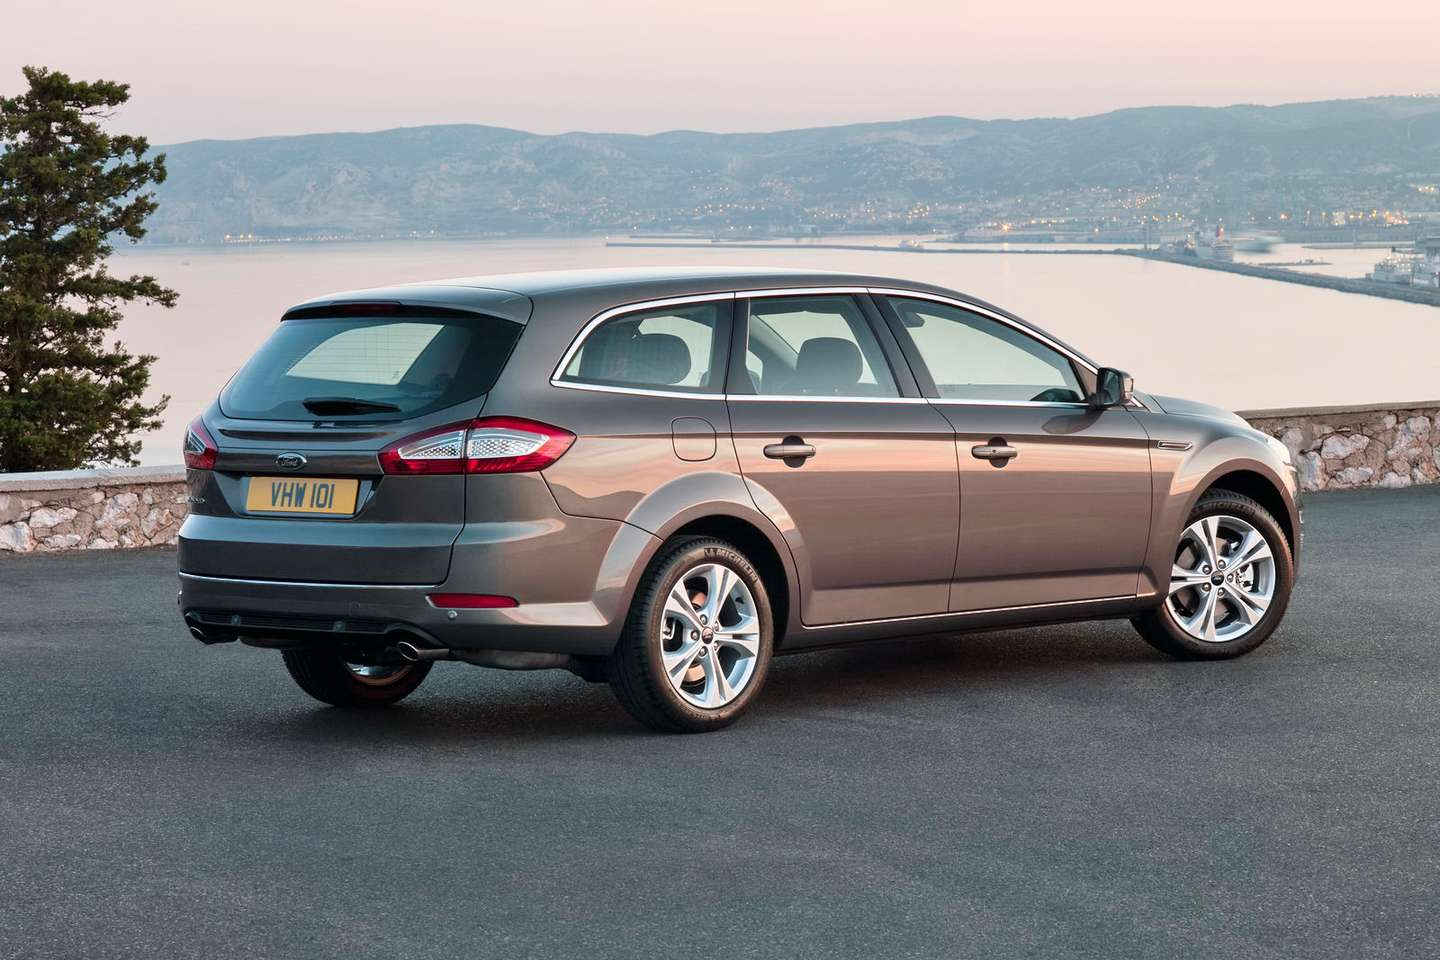 Ford Mondeo Estate #8773613